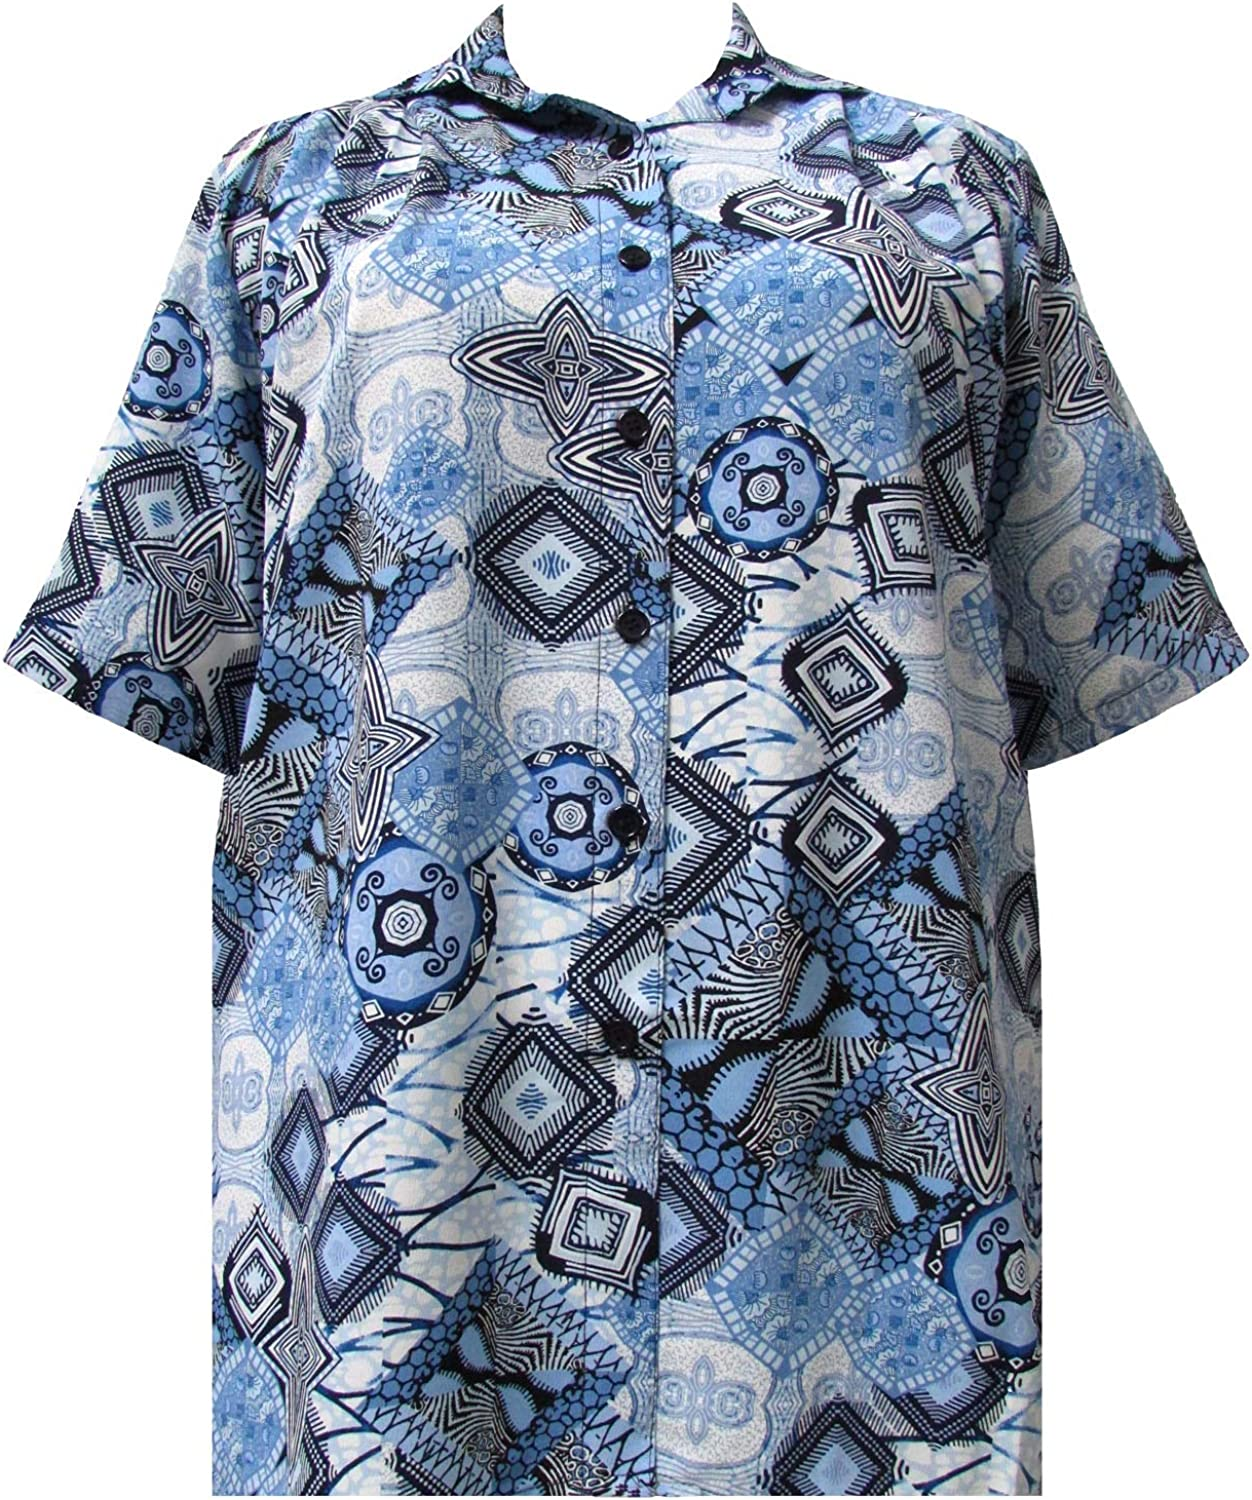 A Personal Touch Women's Plus Size Short Sleeve Button-Front Tunic